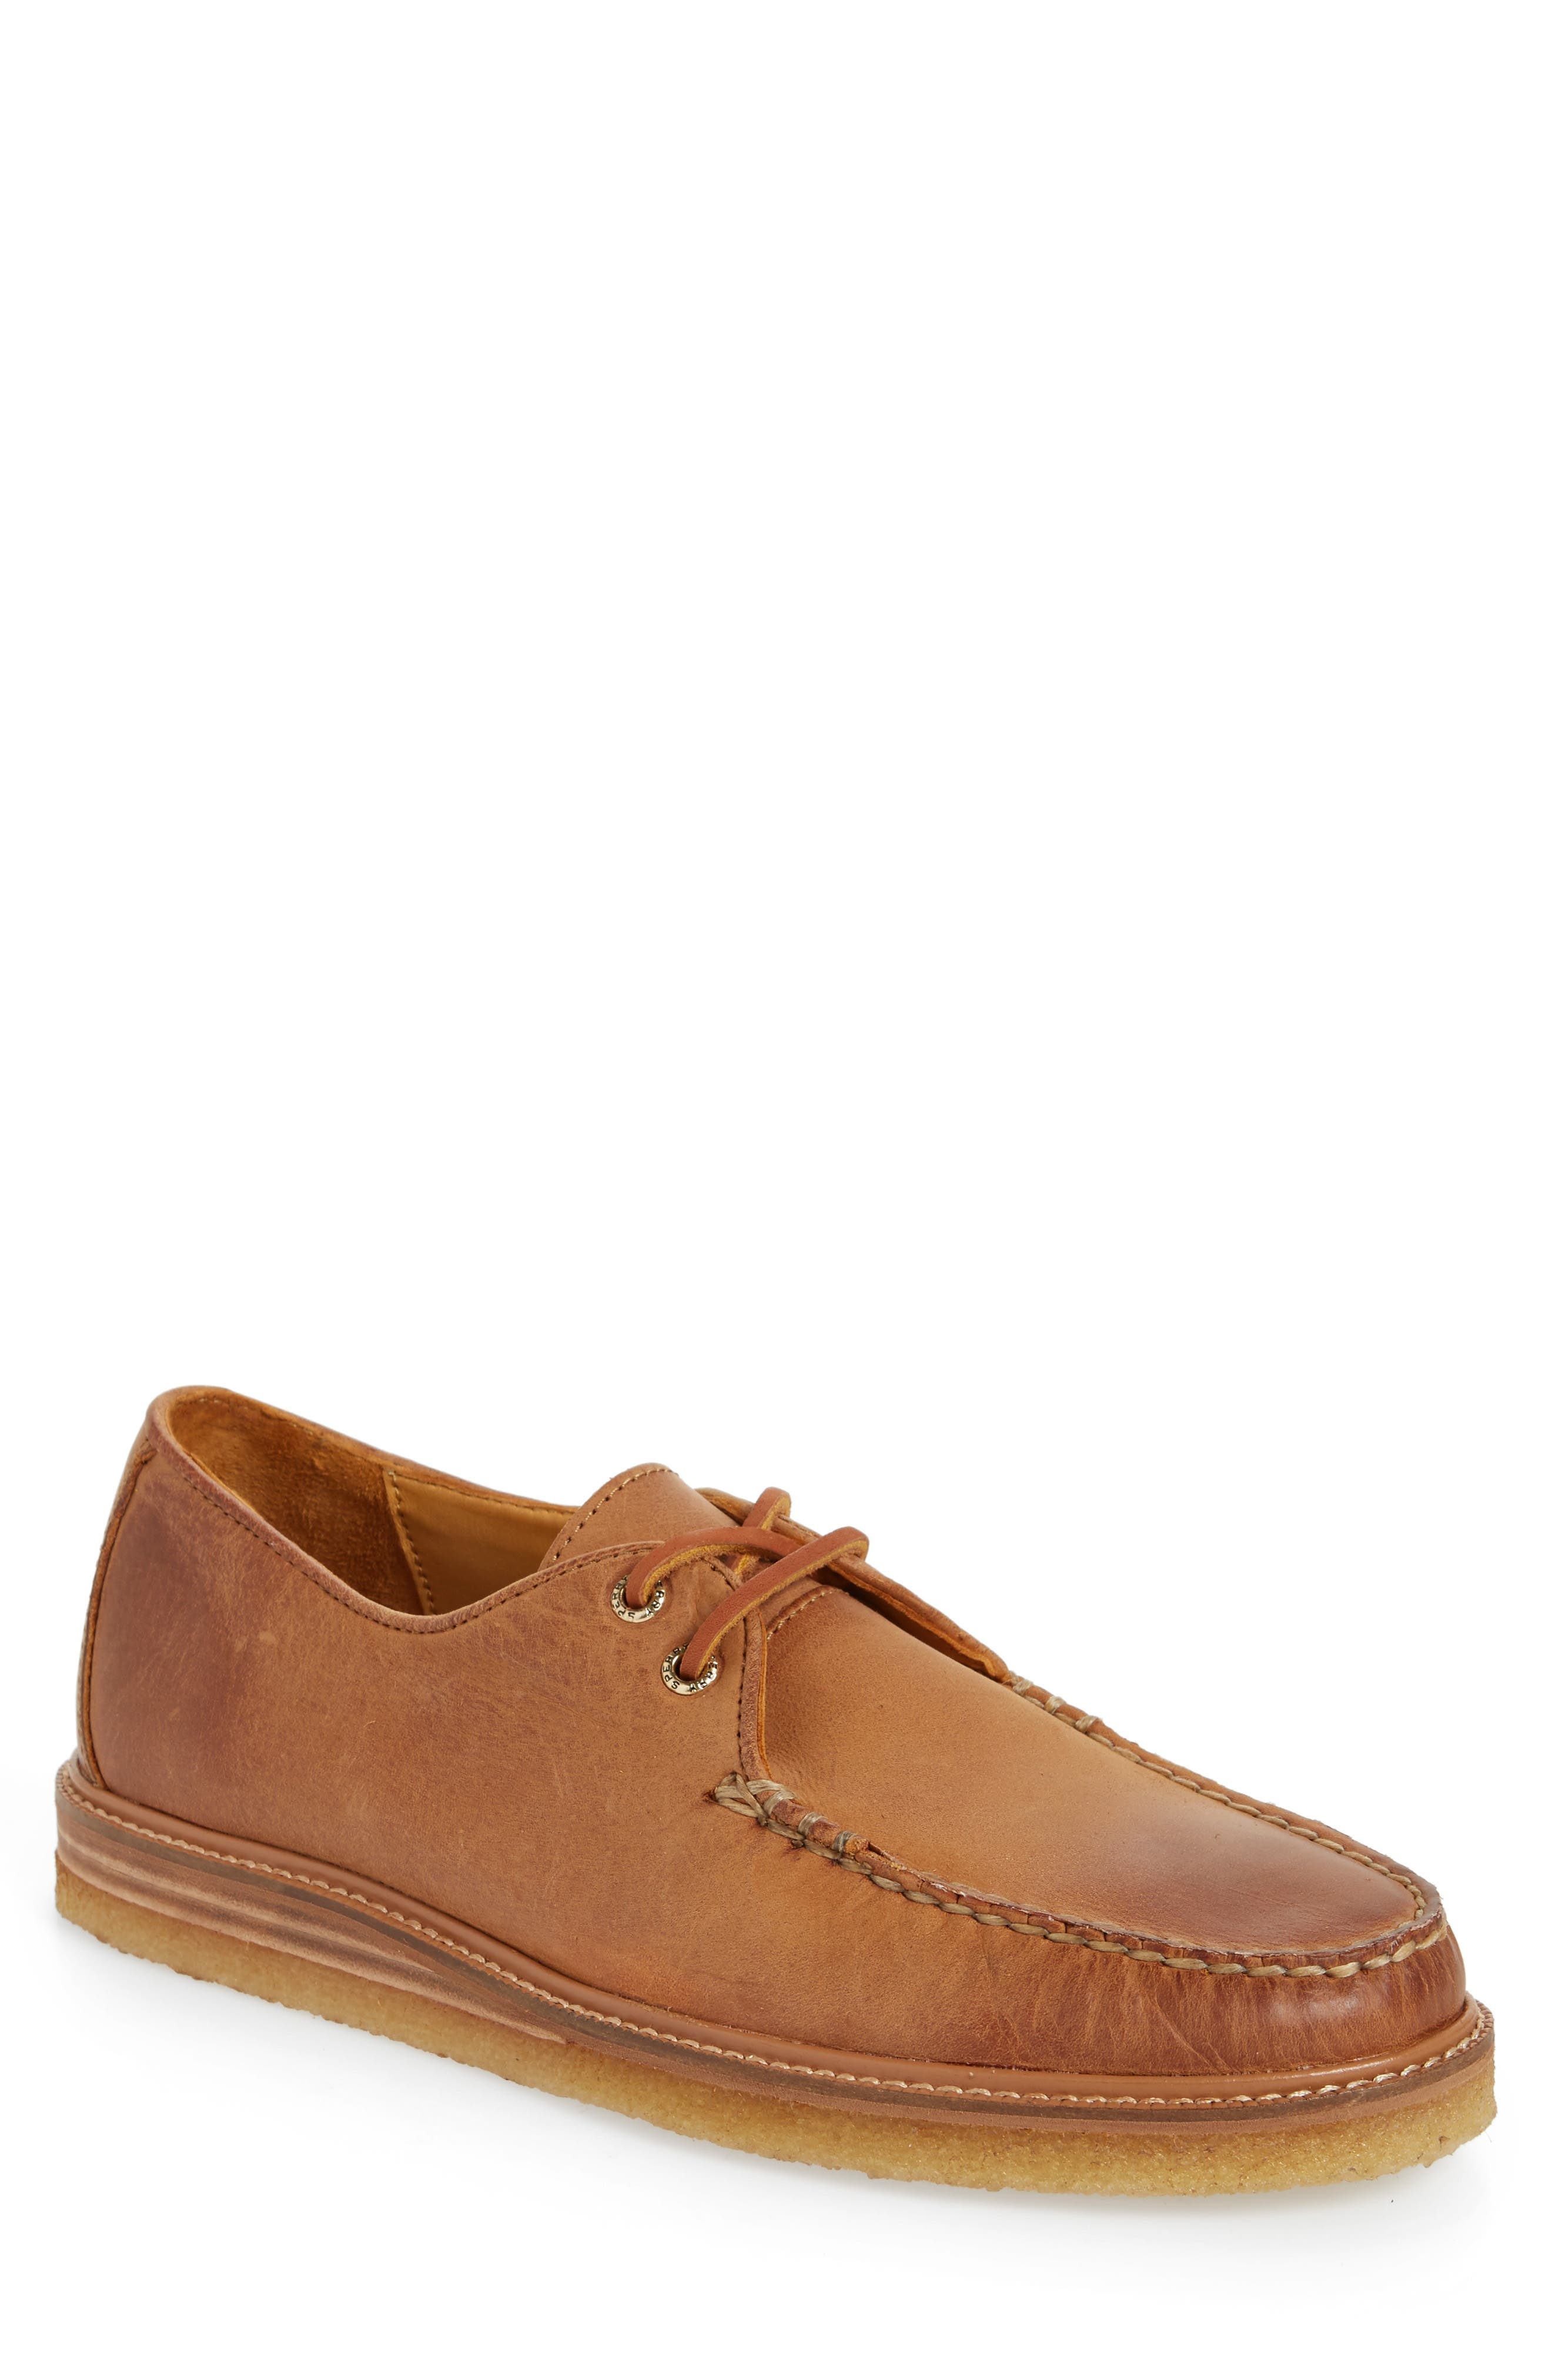 Gold Cup Captain's Crepe Sole Oxford,                             Main thumbnail 1, color,                             Tan Leather